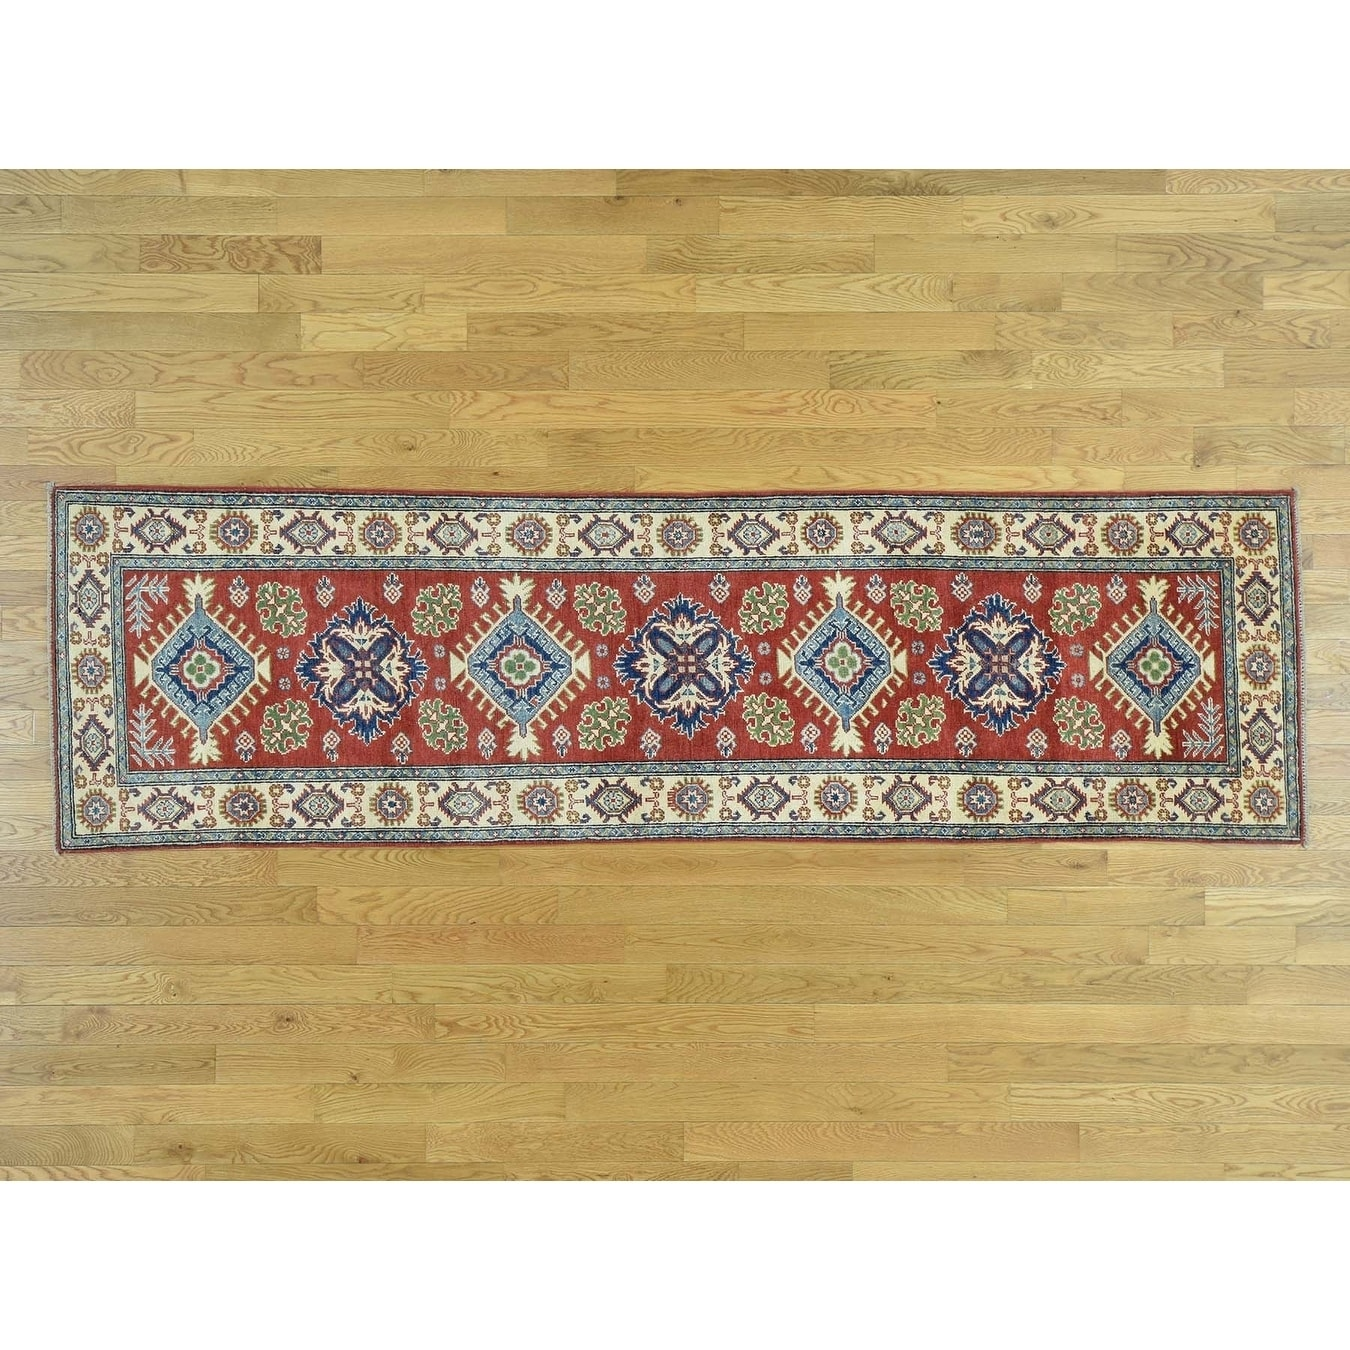 Hand Knotted Red Kazak with Wool Oriental Rug - 29 x 98